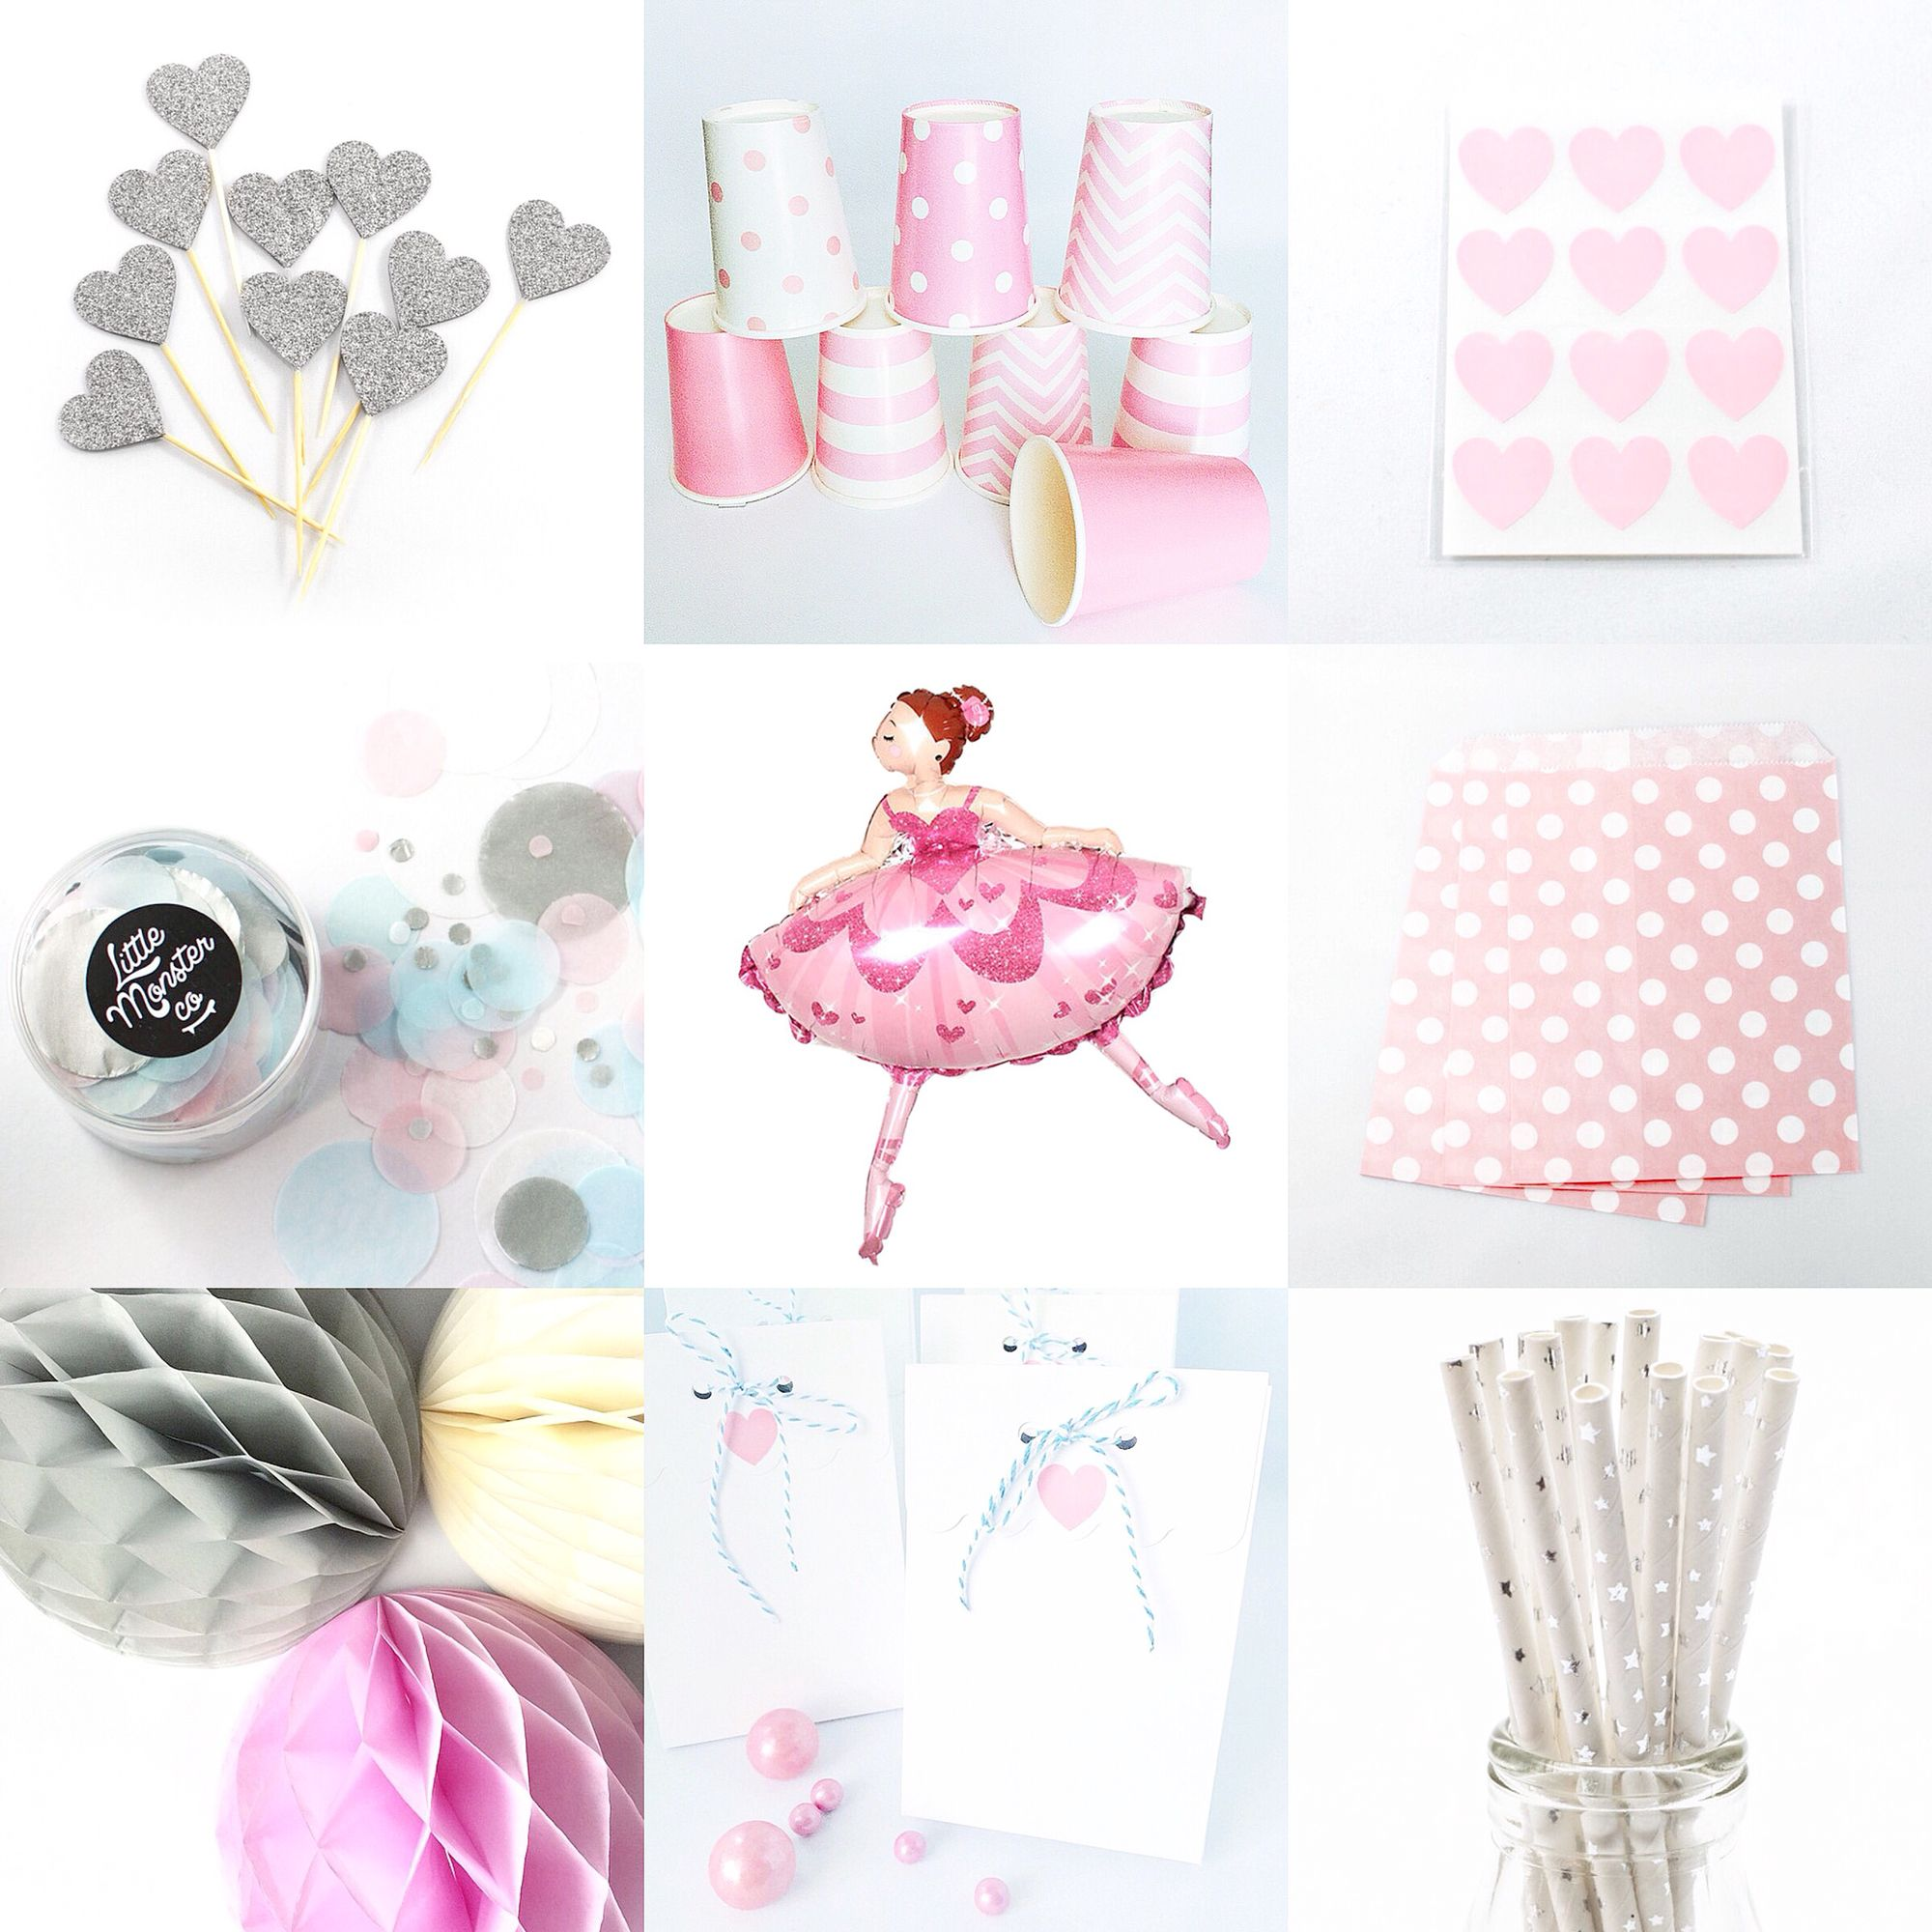 Pretty ballerina party details. All available now at littlemonsterco.com.au